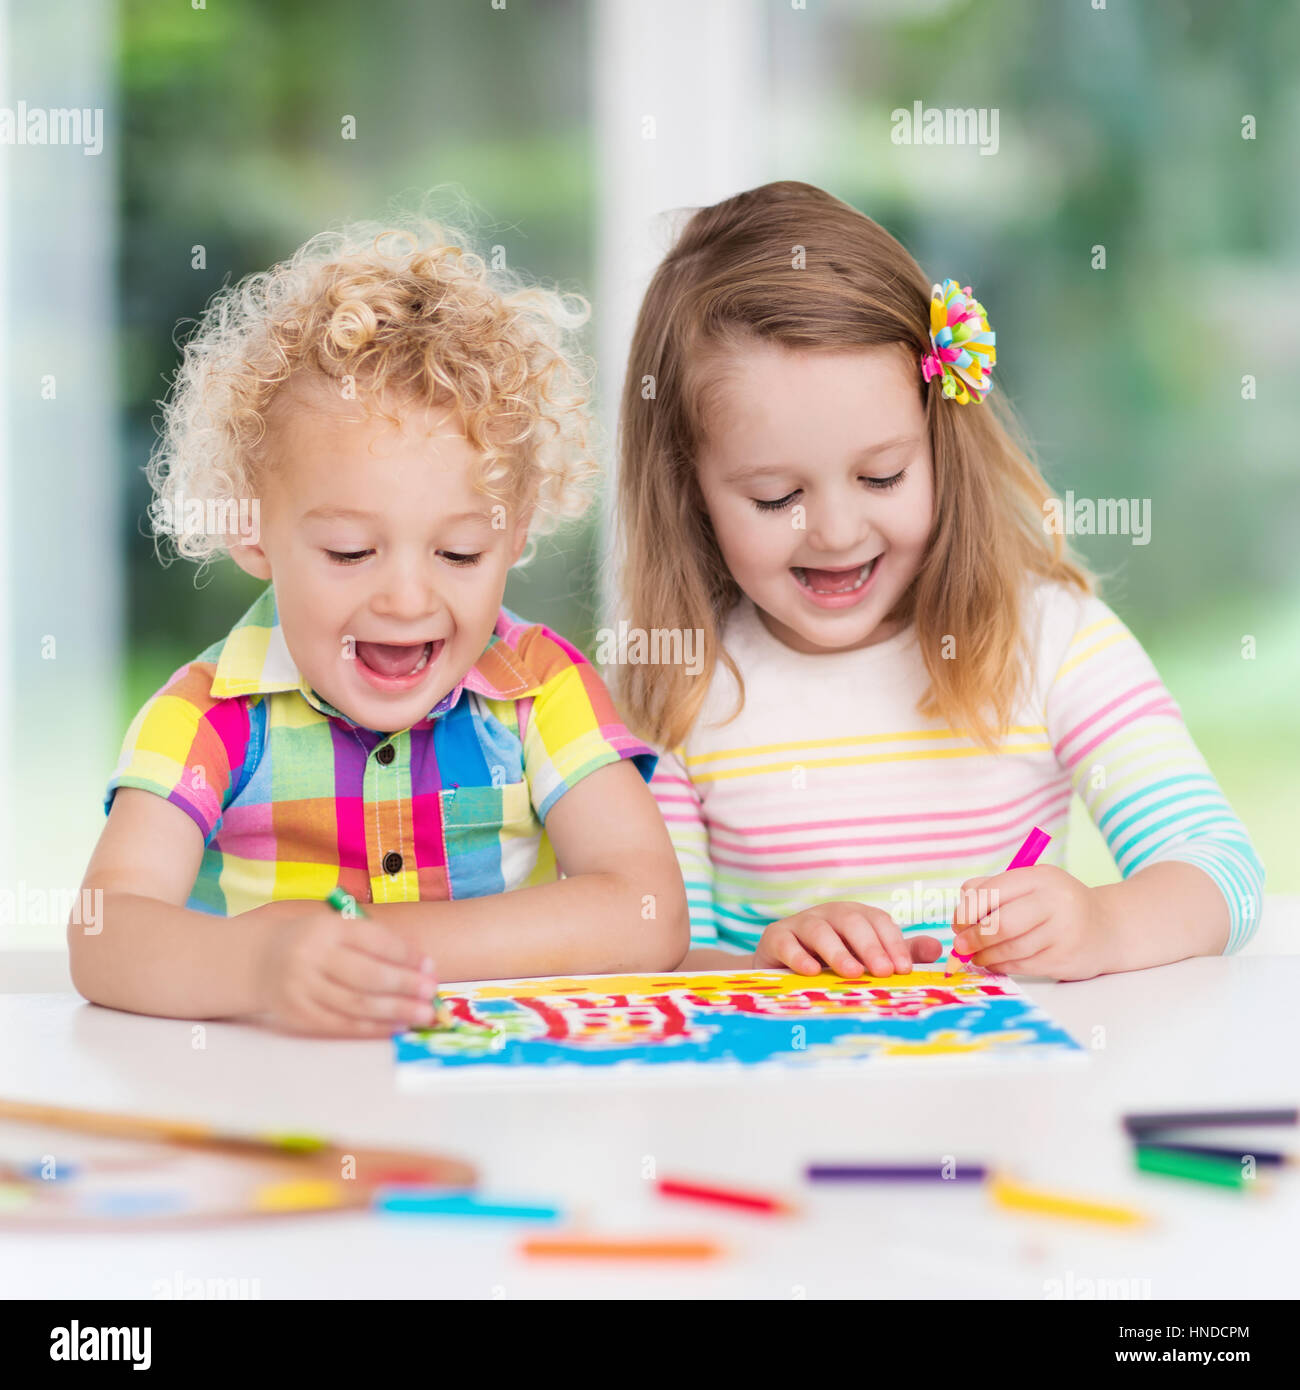 Little Boy And Girl Draw Together In White Room With Window Kids